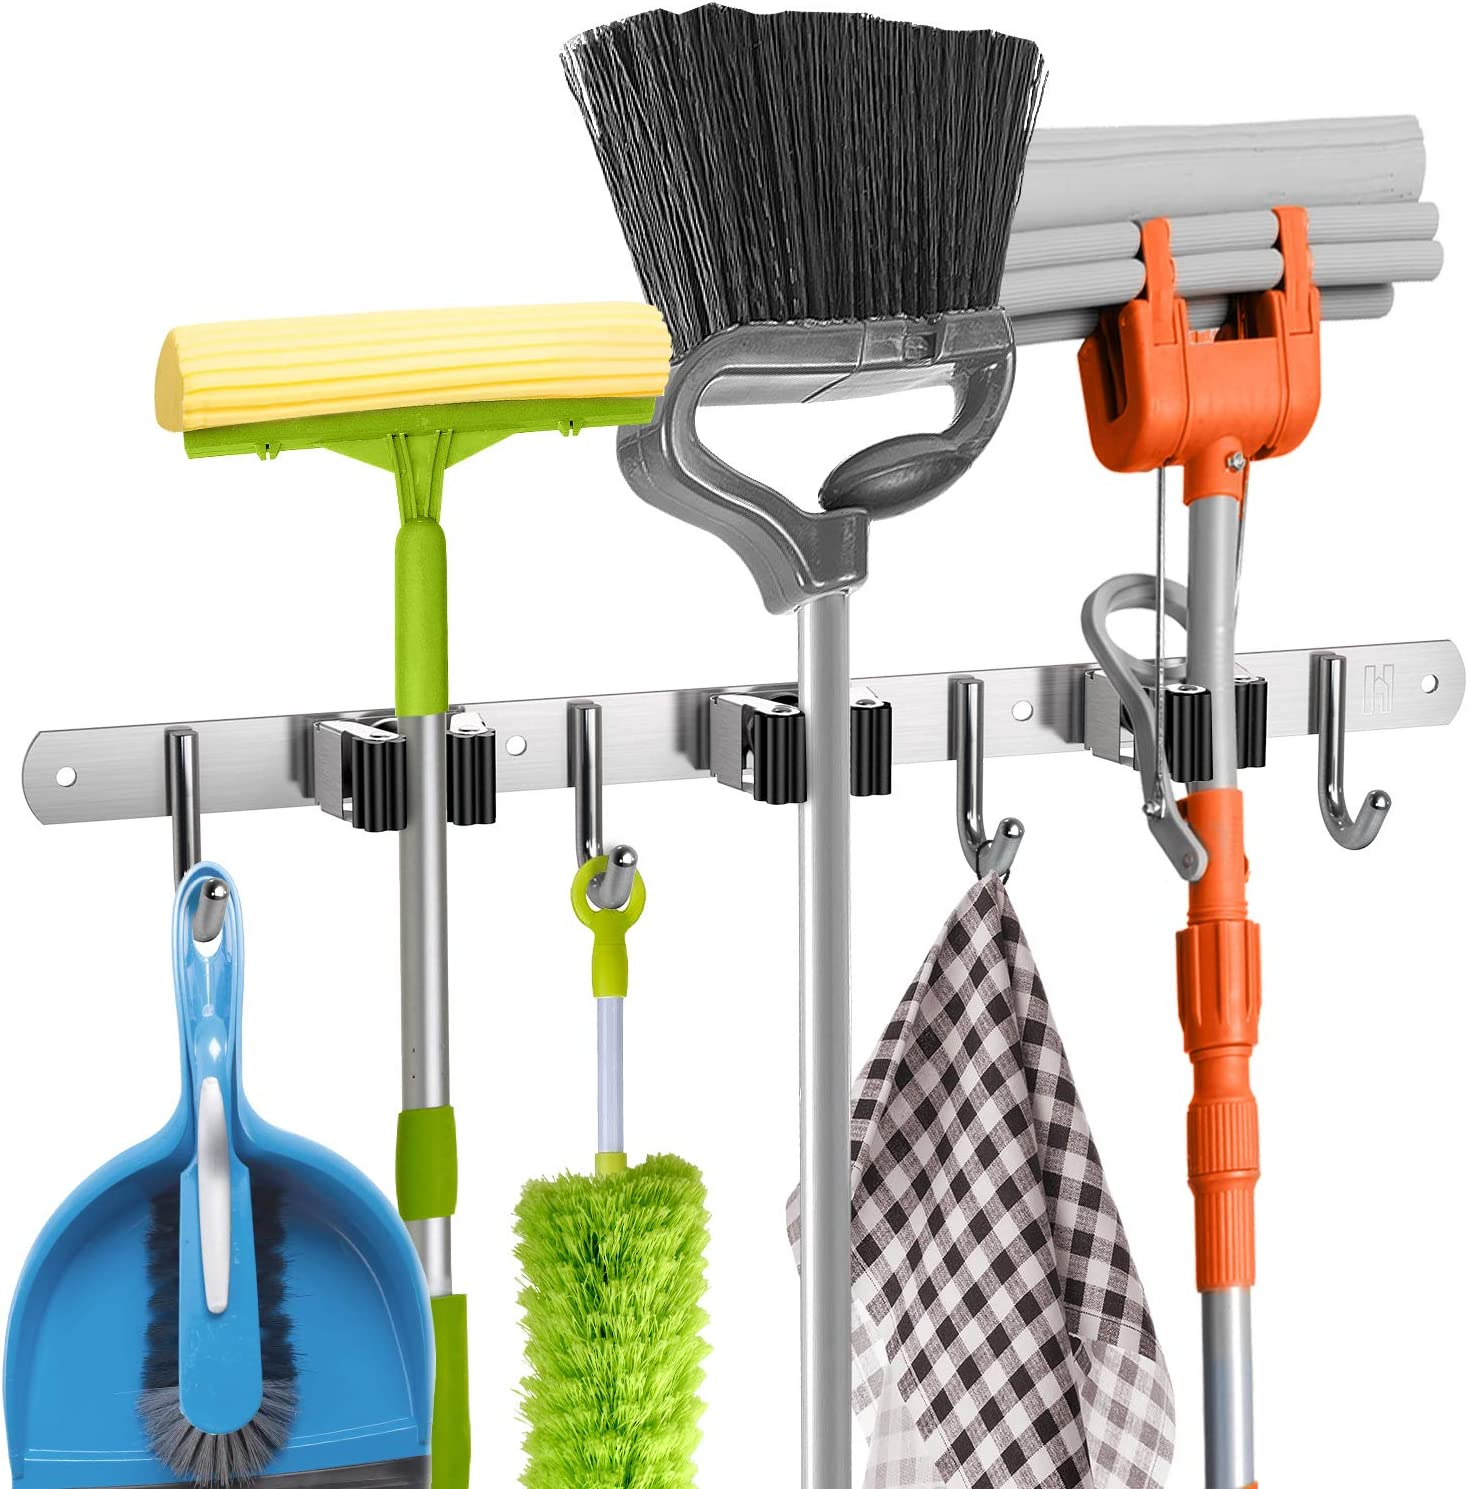 4x Mop Organizer Holder Wall Mount Brush Broom Hanger Storage Rack Kitchen Tool